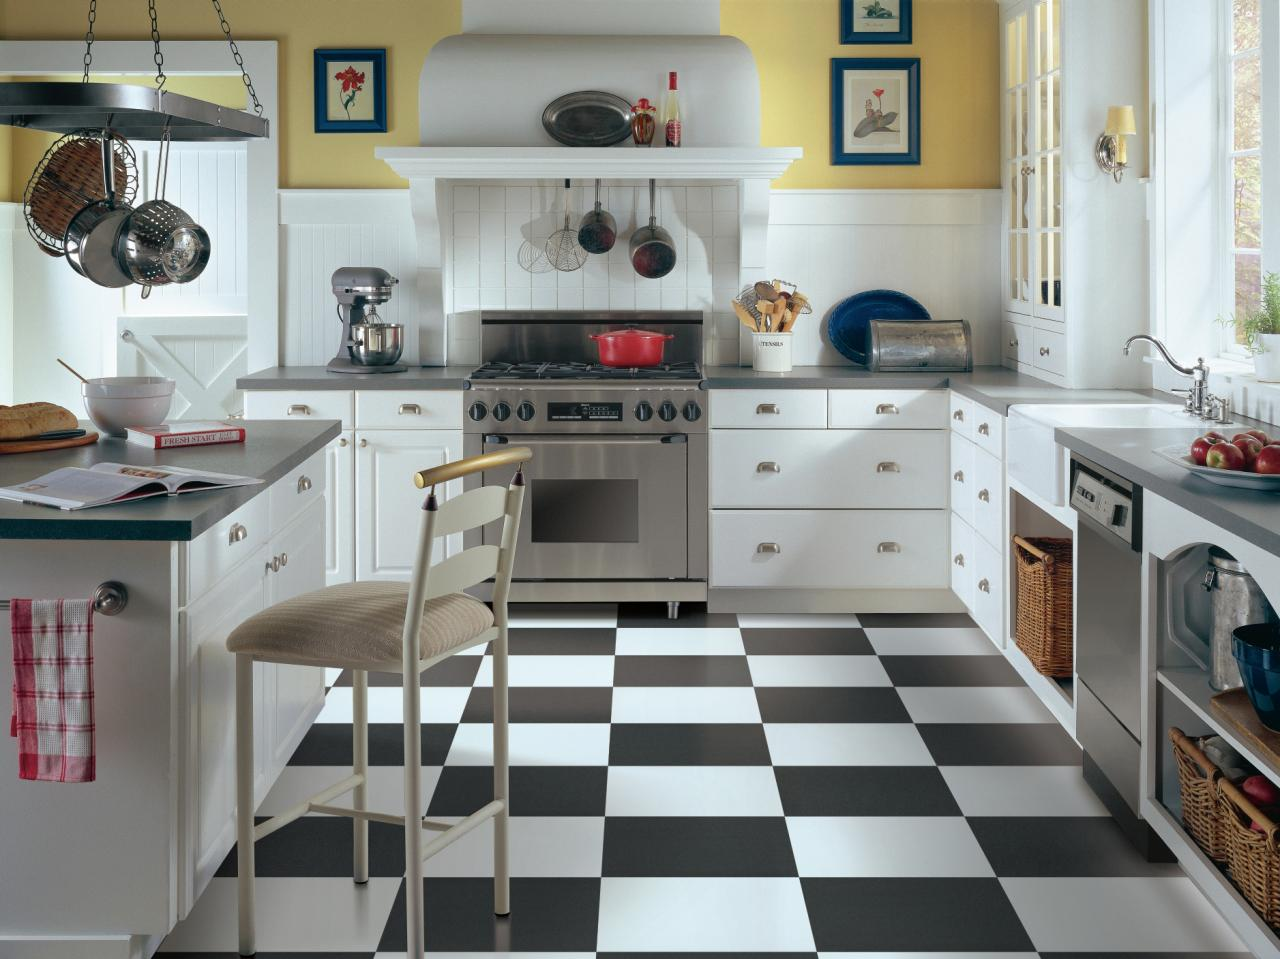 Cheap Kitchen Flooring Ideas Part - 42: Vinyl Flooring In The Kitchen